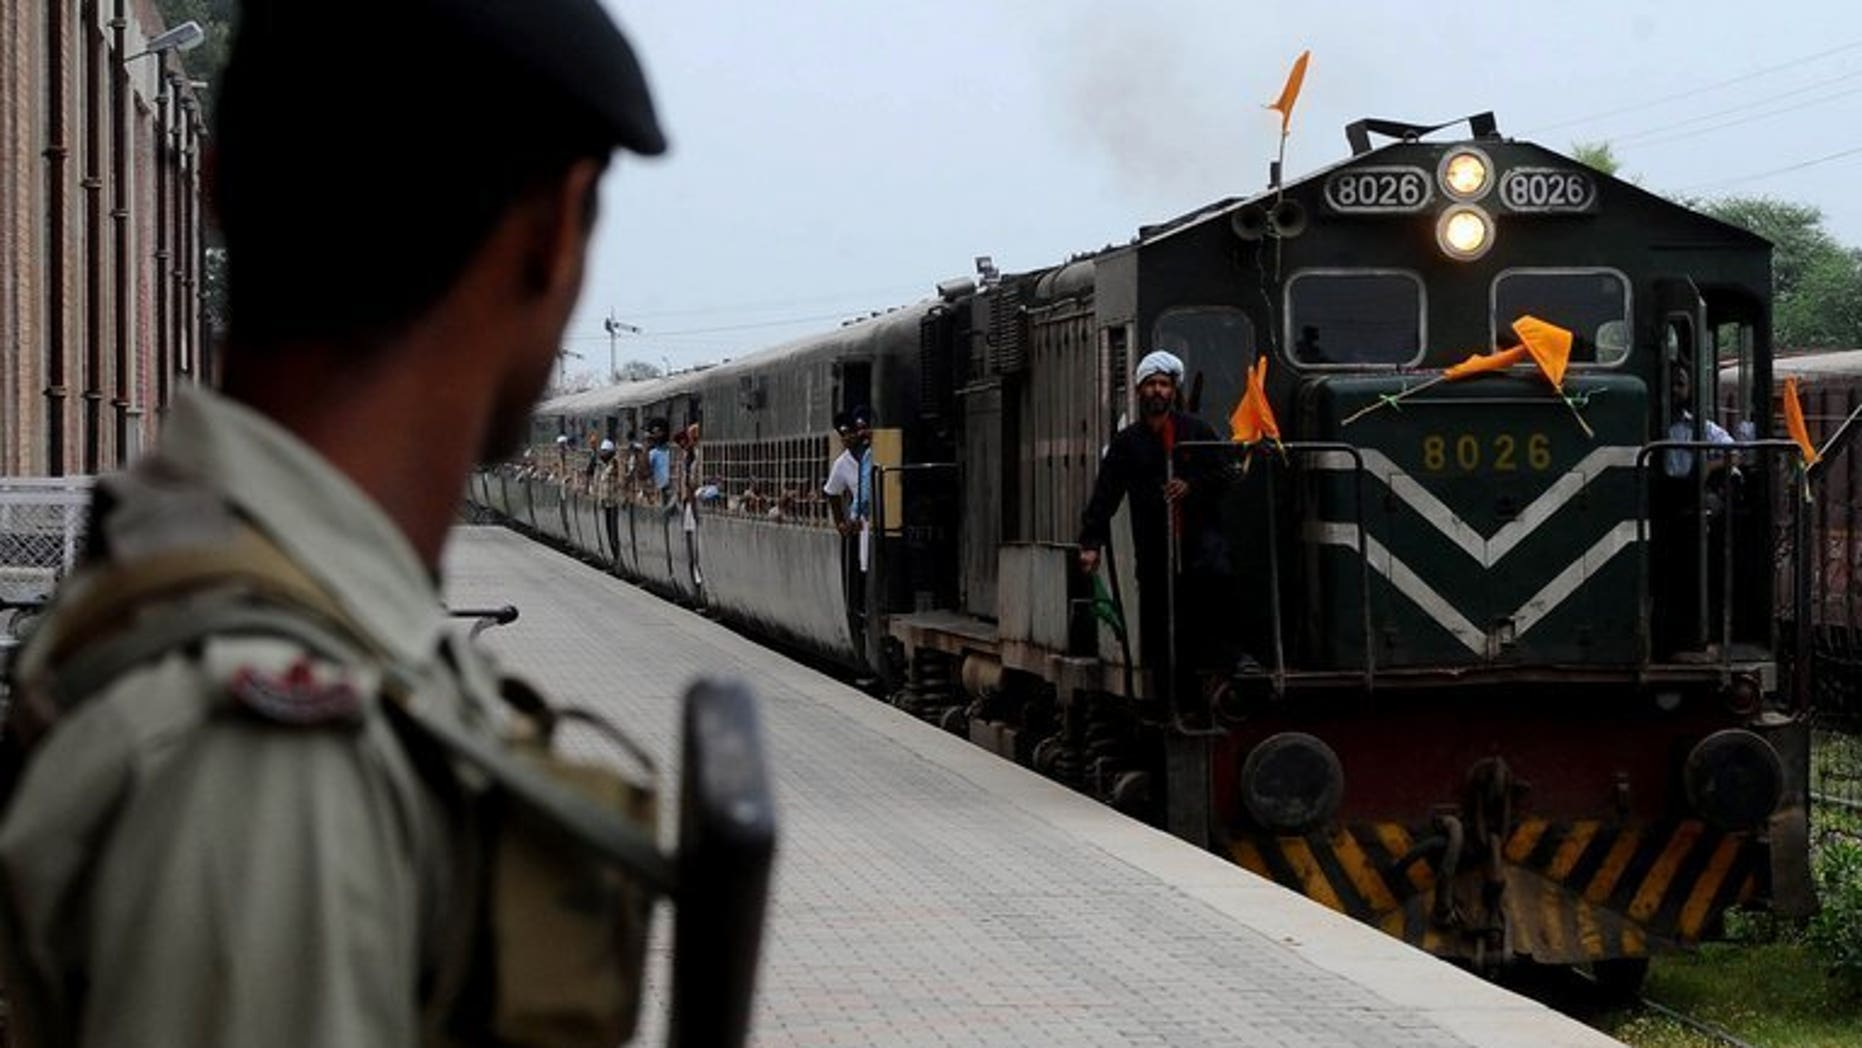 "A Pakistani paramilitary soldier watches a train arriving at Wagah railway station in Wagah, northeast Pakistan on April 10, 2012. A bomb exploded on a passenger train in central Pakistan Monday, killing a toddler and wounding 13 others, officials said, in what the railways minister called ""an act of terrorism""."